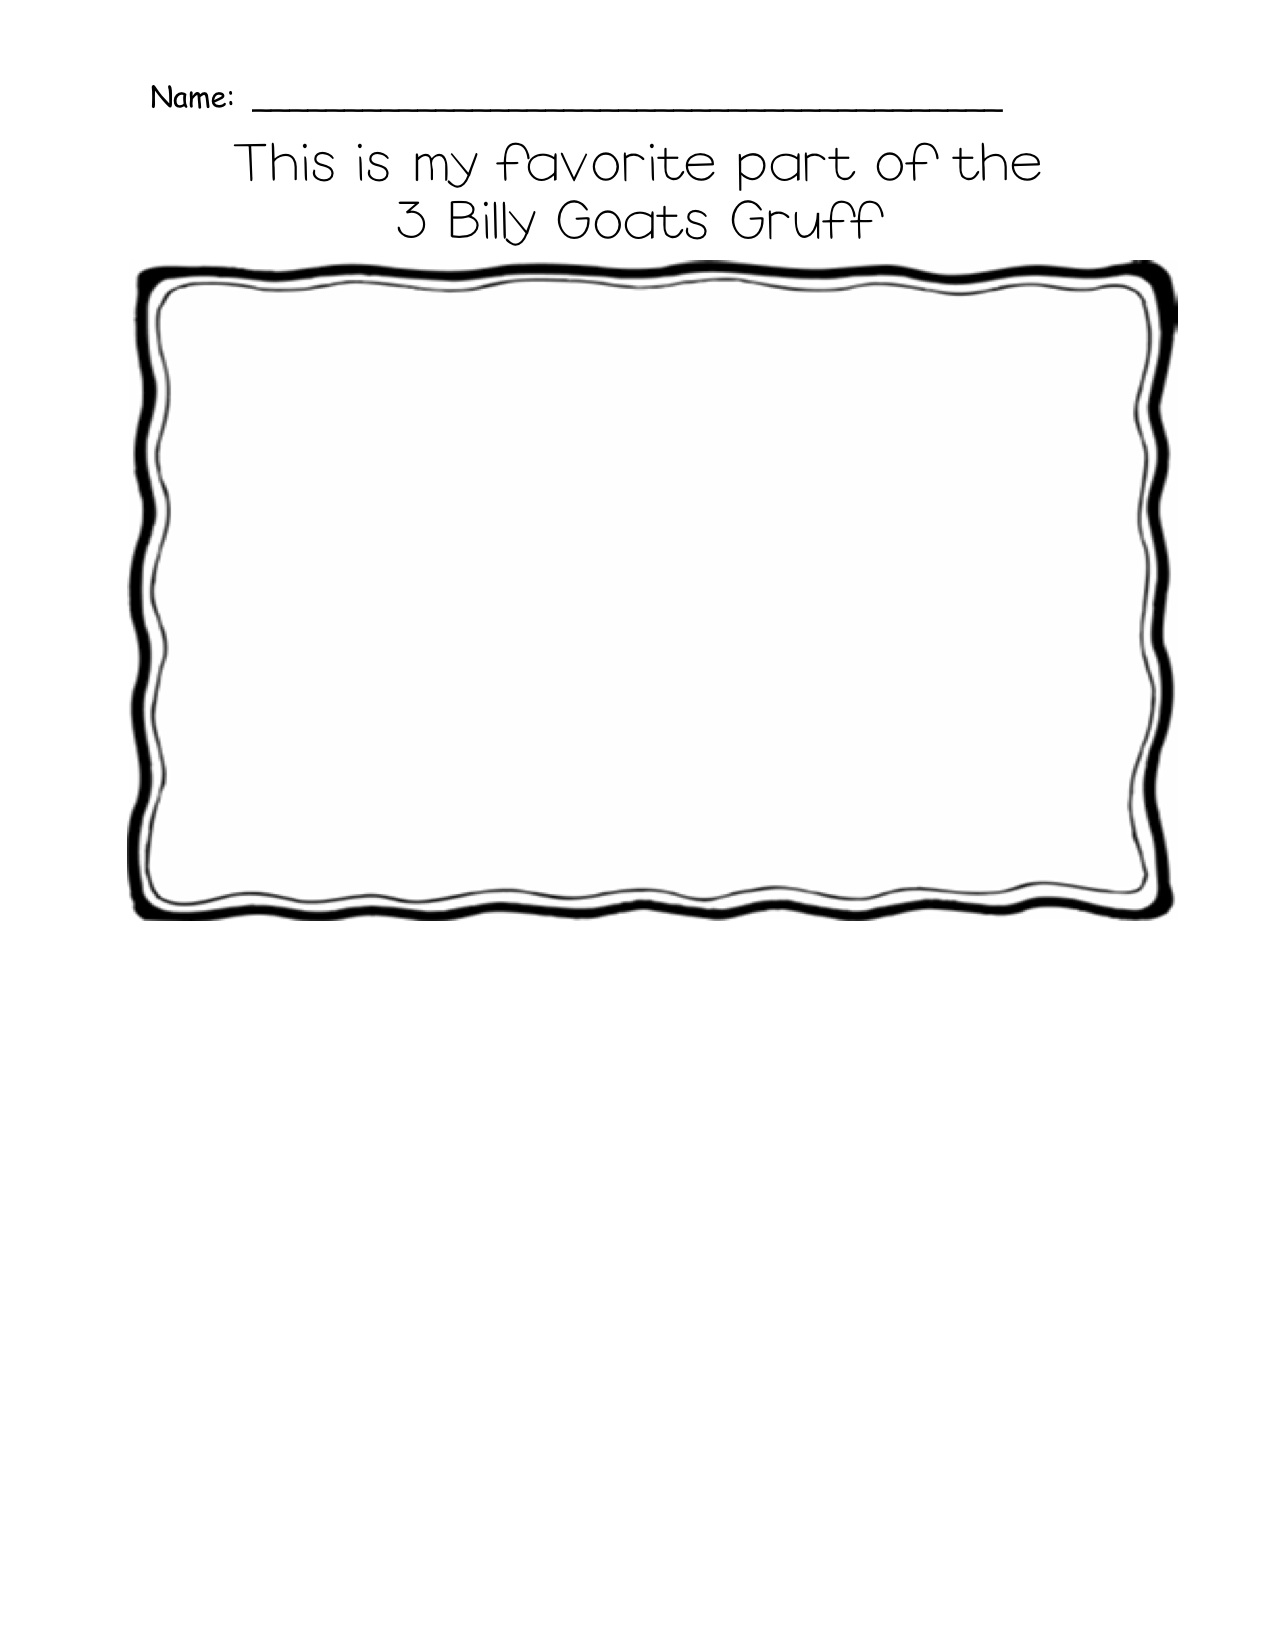 12 Best Images Of The Story Of My Favorite Part Worksheet